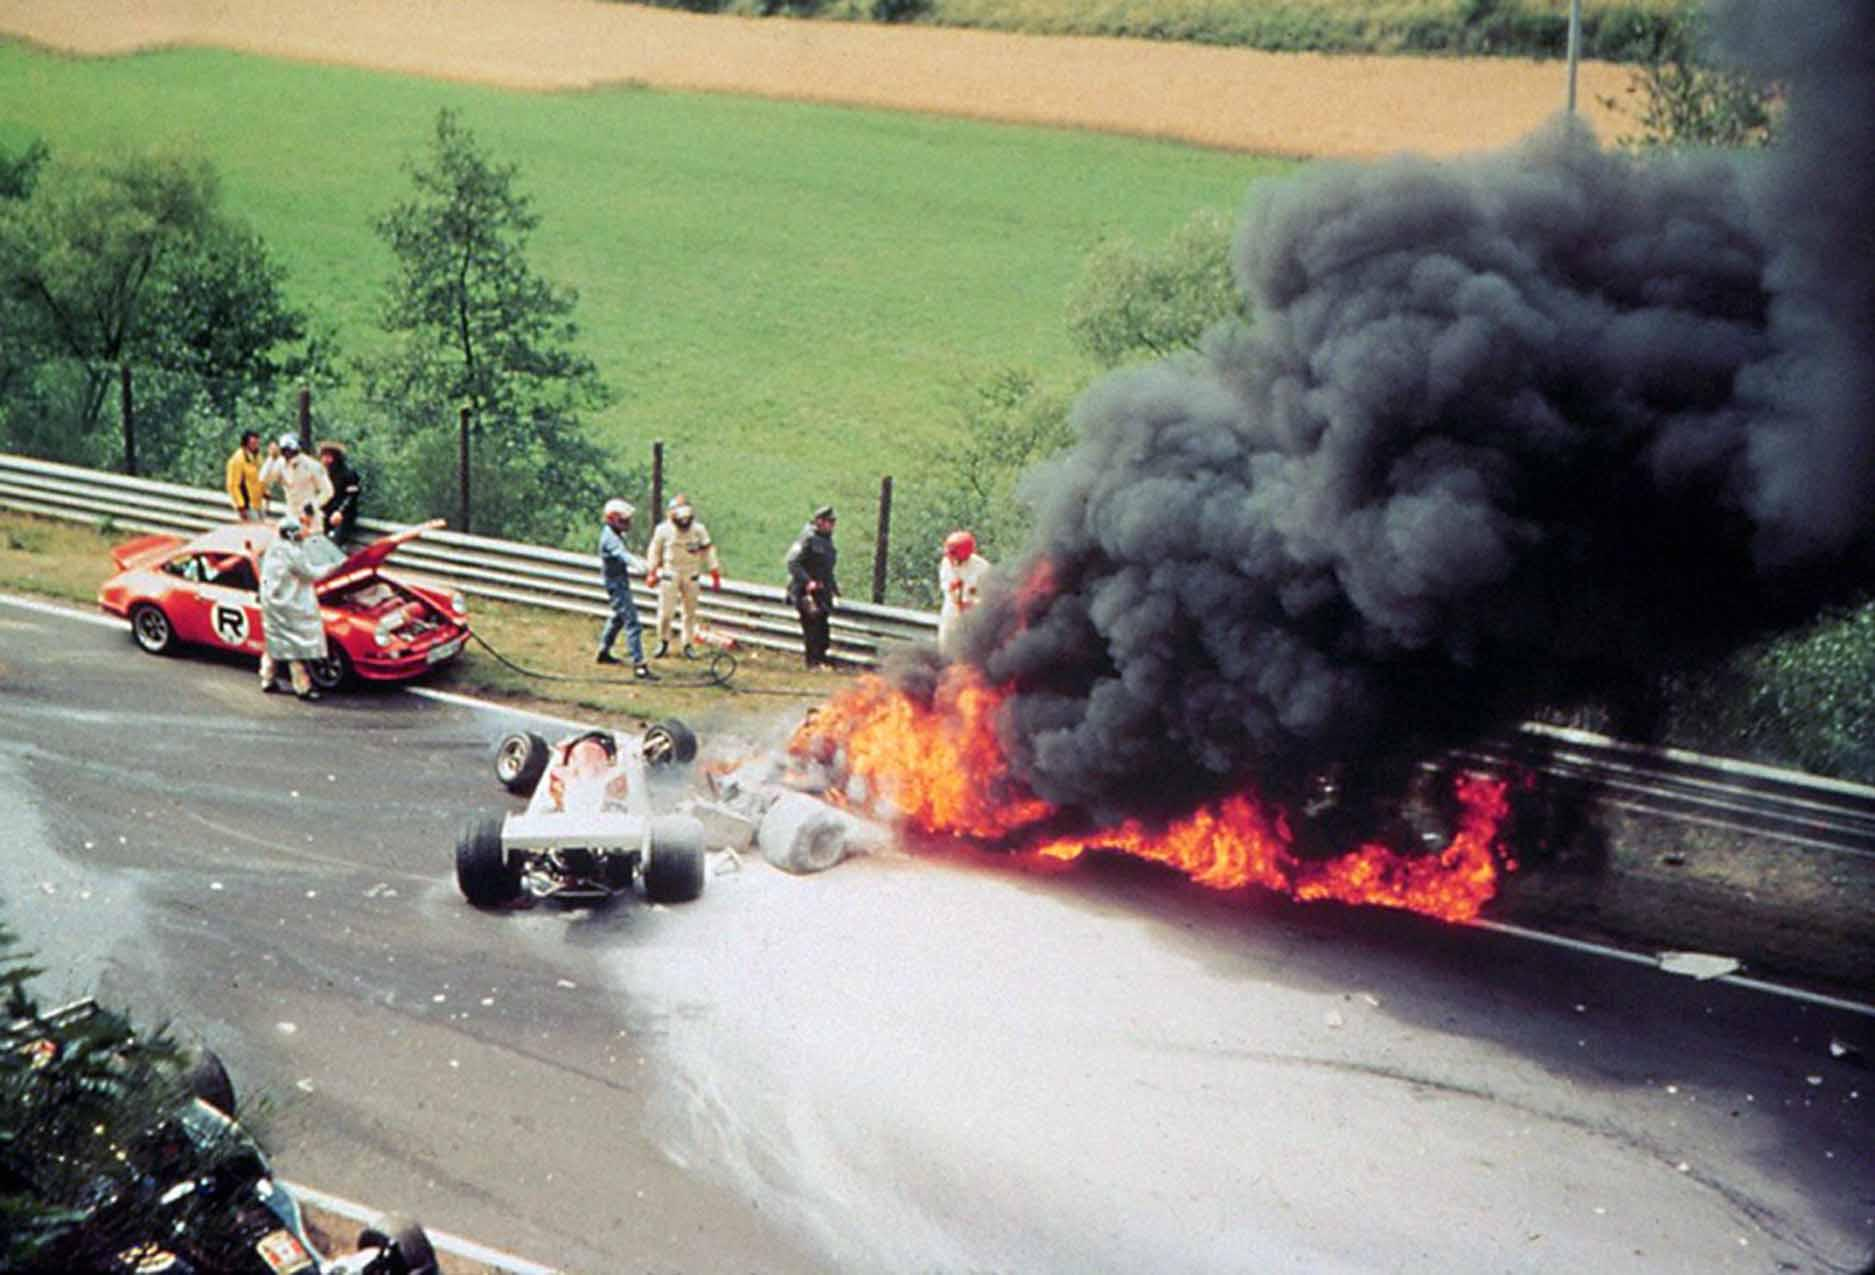 Lauda suffered lung damage in the accident, and was not expected to survive